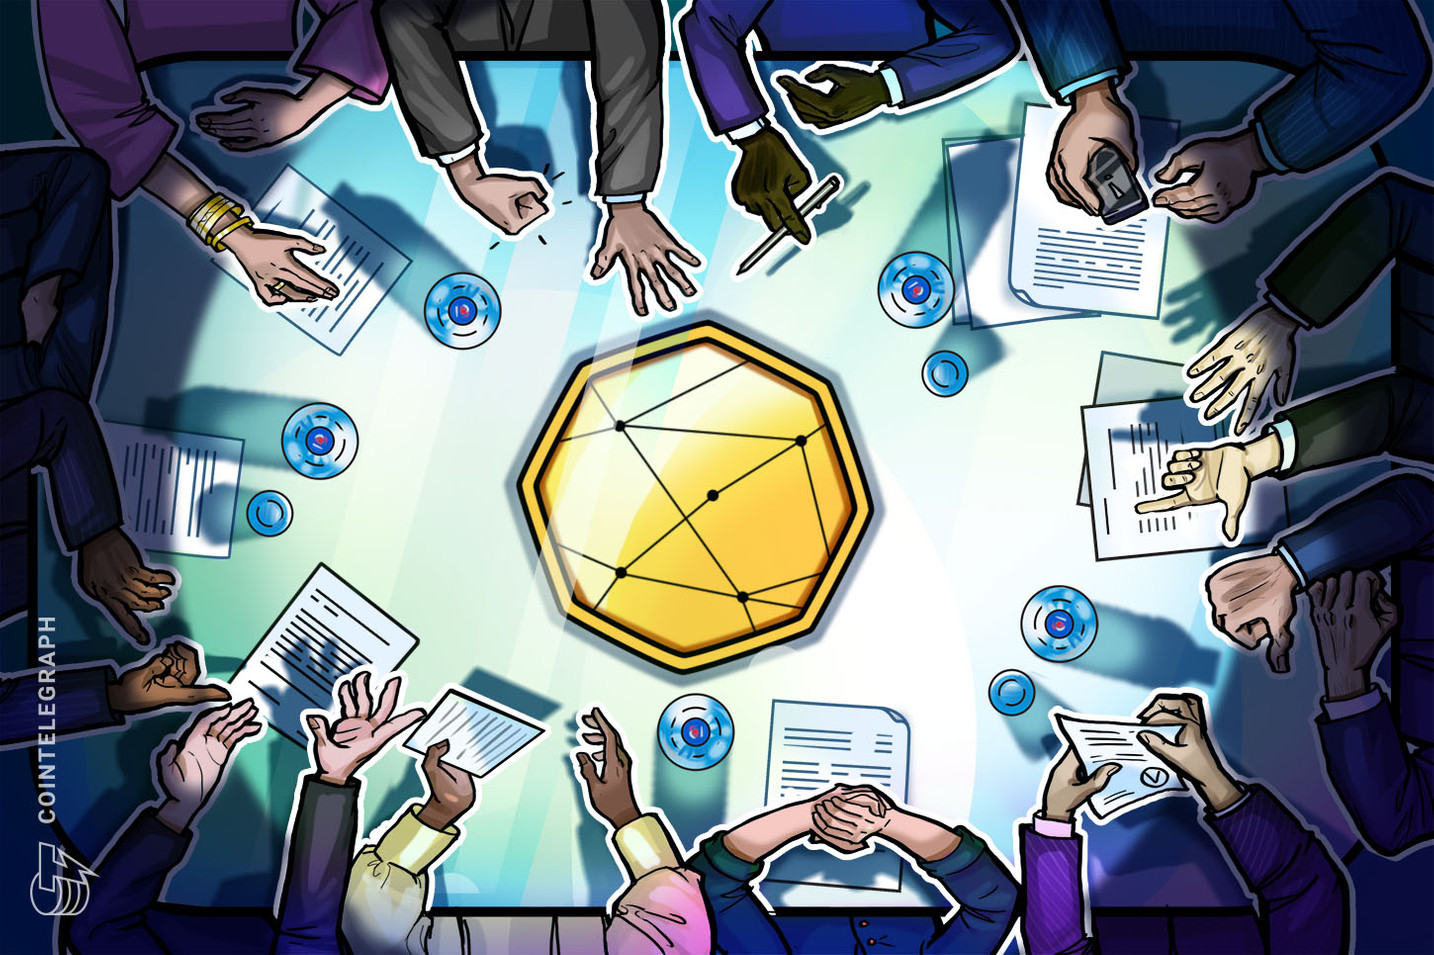 US Fed, OCC and FDIC to set up interagency team for crypto regulations